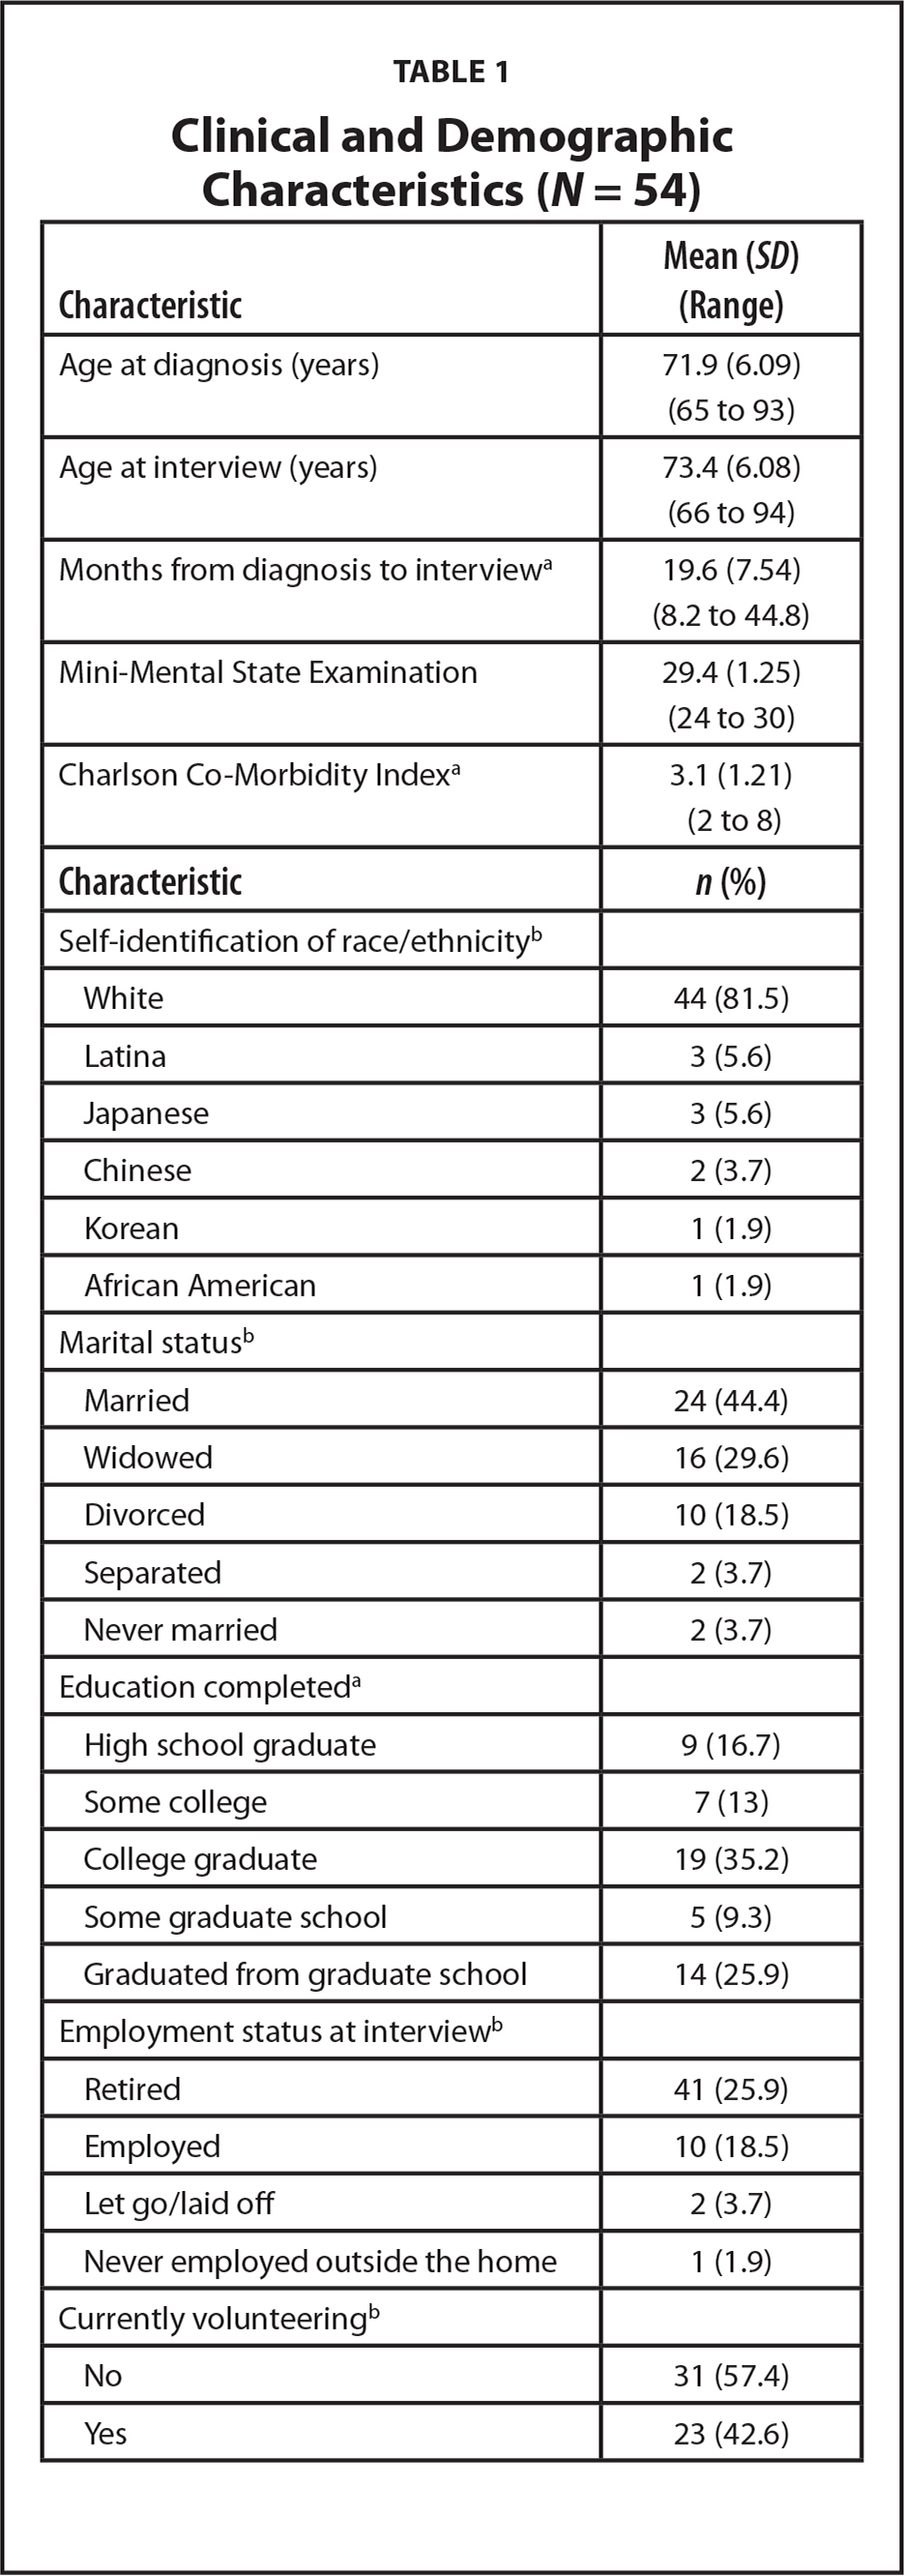 Clinical and Demographic Characteristics (N = 54)